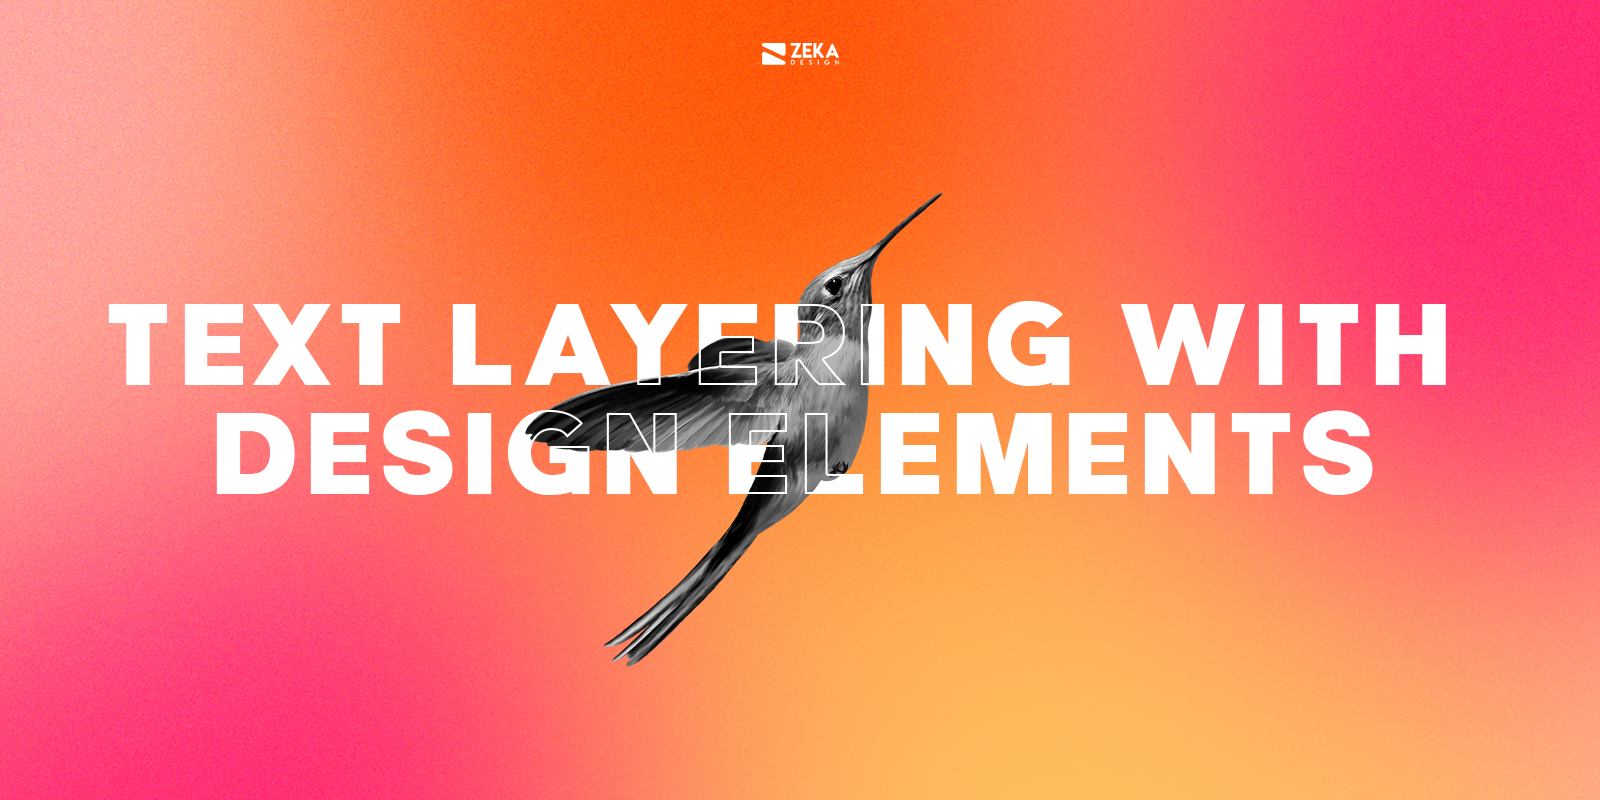 Text Layering With Design Elements Typography Design Trends 2021